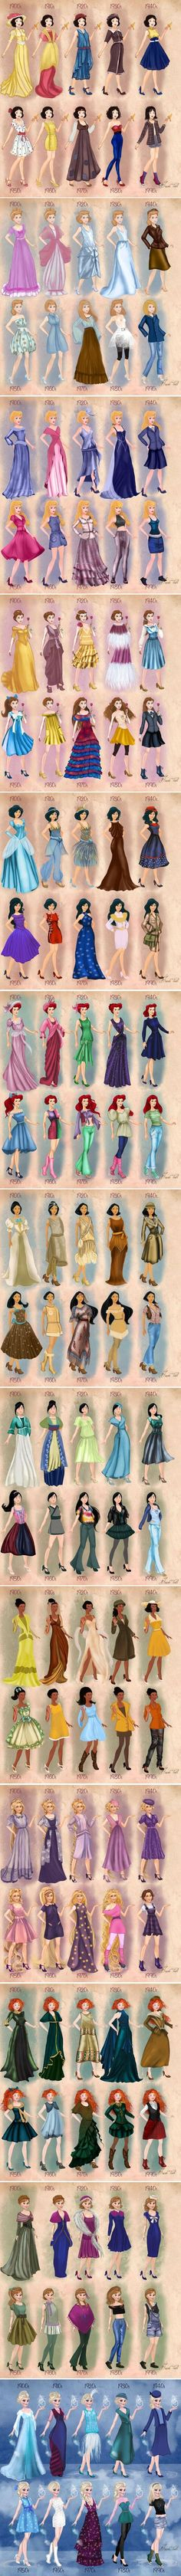 Disney Princesses in Century Fashion. My fav disney princess is Aurora. My fav dress are all dresses in (how can always made the greatest dresses? Estilo Disney, Arte Disney, Disney Girls, Disney Style, Disney Love, Disney Magic, Disney And Dreamworks, Disney Pixar, Disney Characters